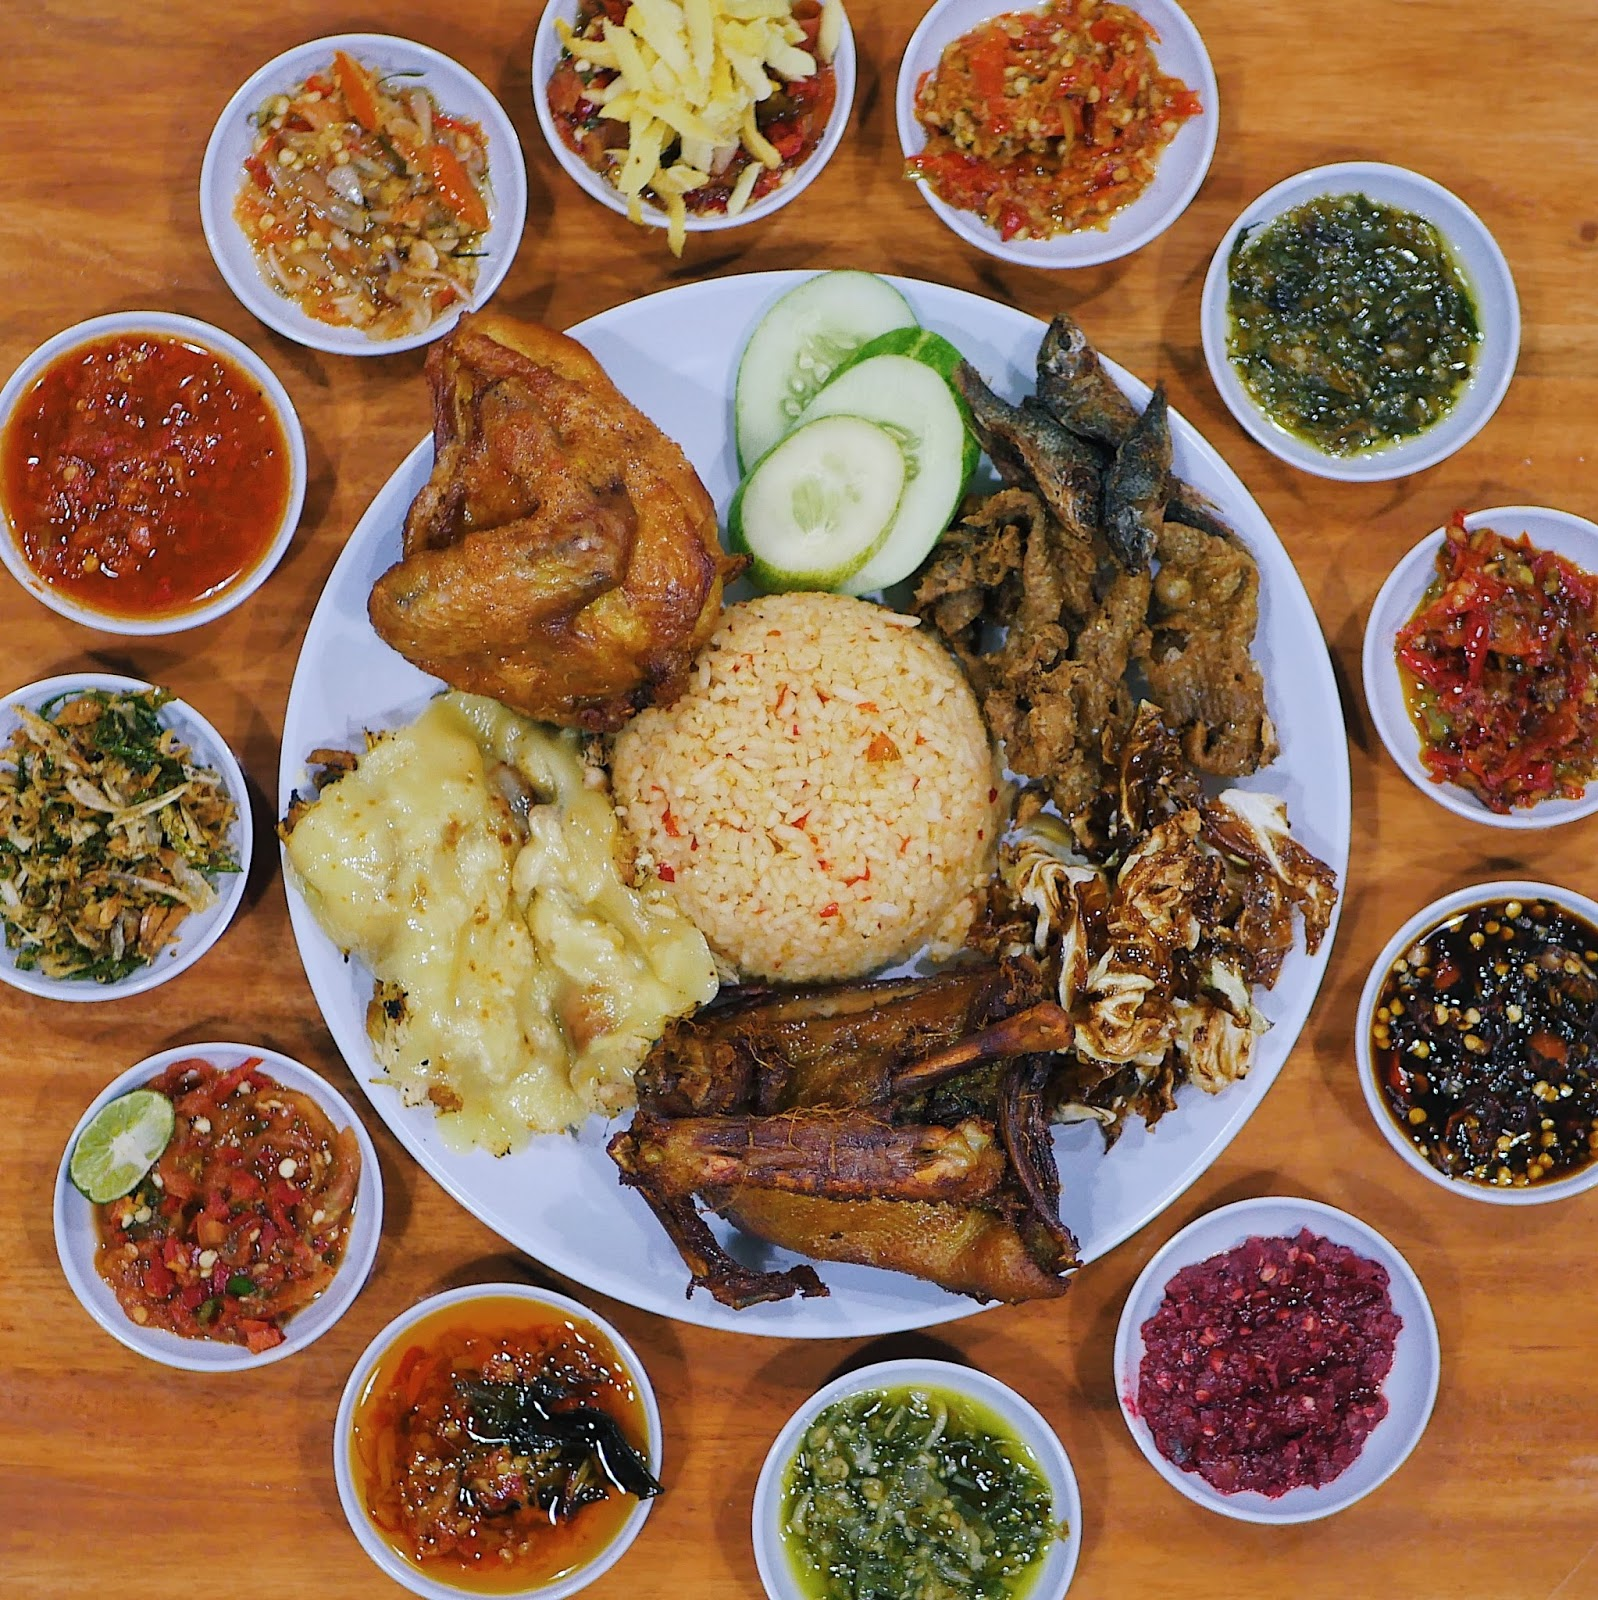 how to say food in indonesian